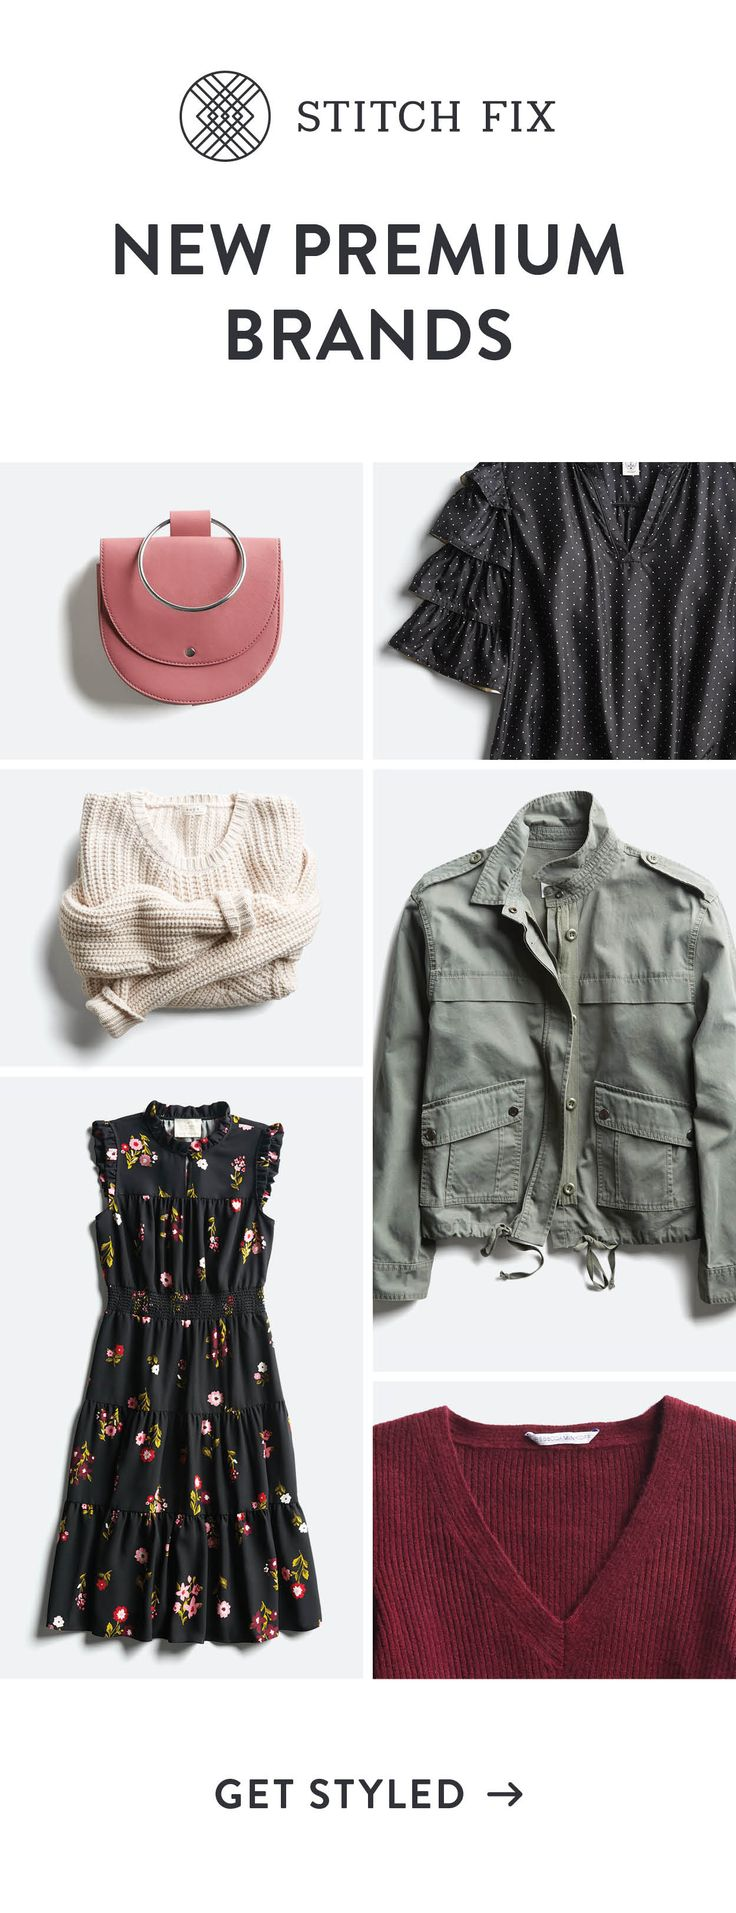 Learn how to mix premium brands with everyday essentials & seasonal hits for unforgettable style. You'll get a handpicked selection of pieces from a professionally trained Stitch Fix Stylist, as well as expert advice. Free shipping & returns—every time.